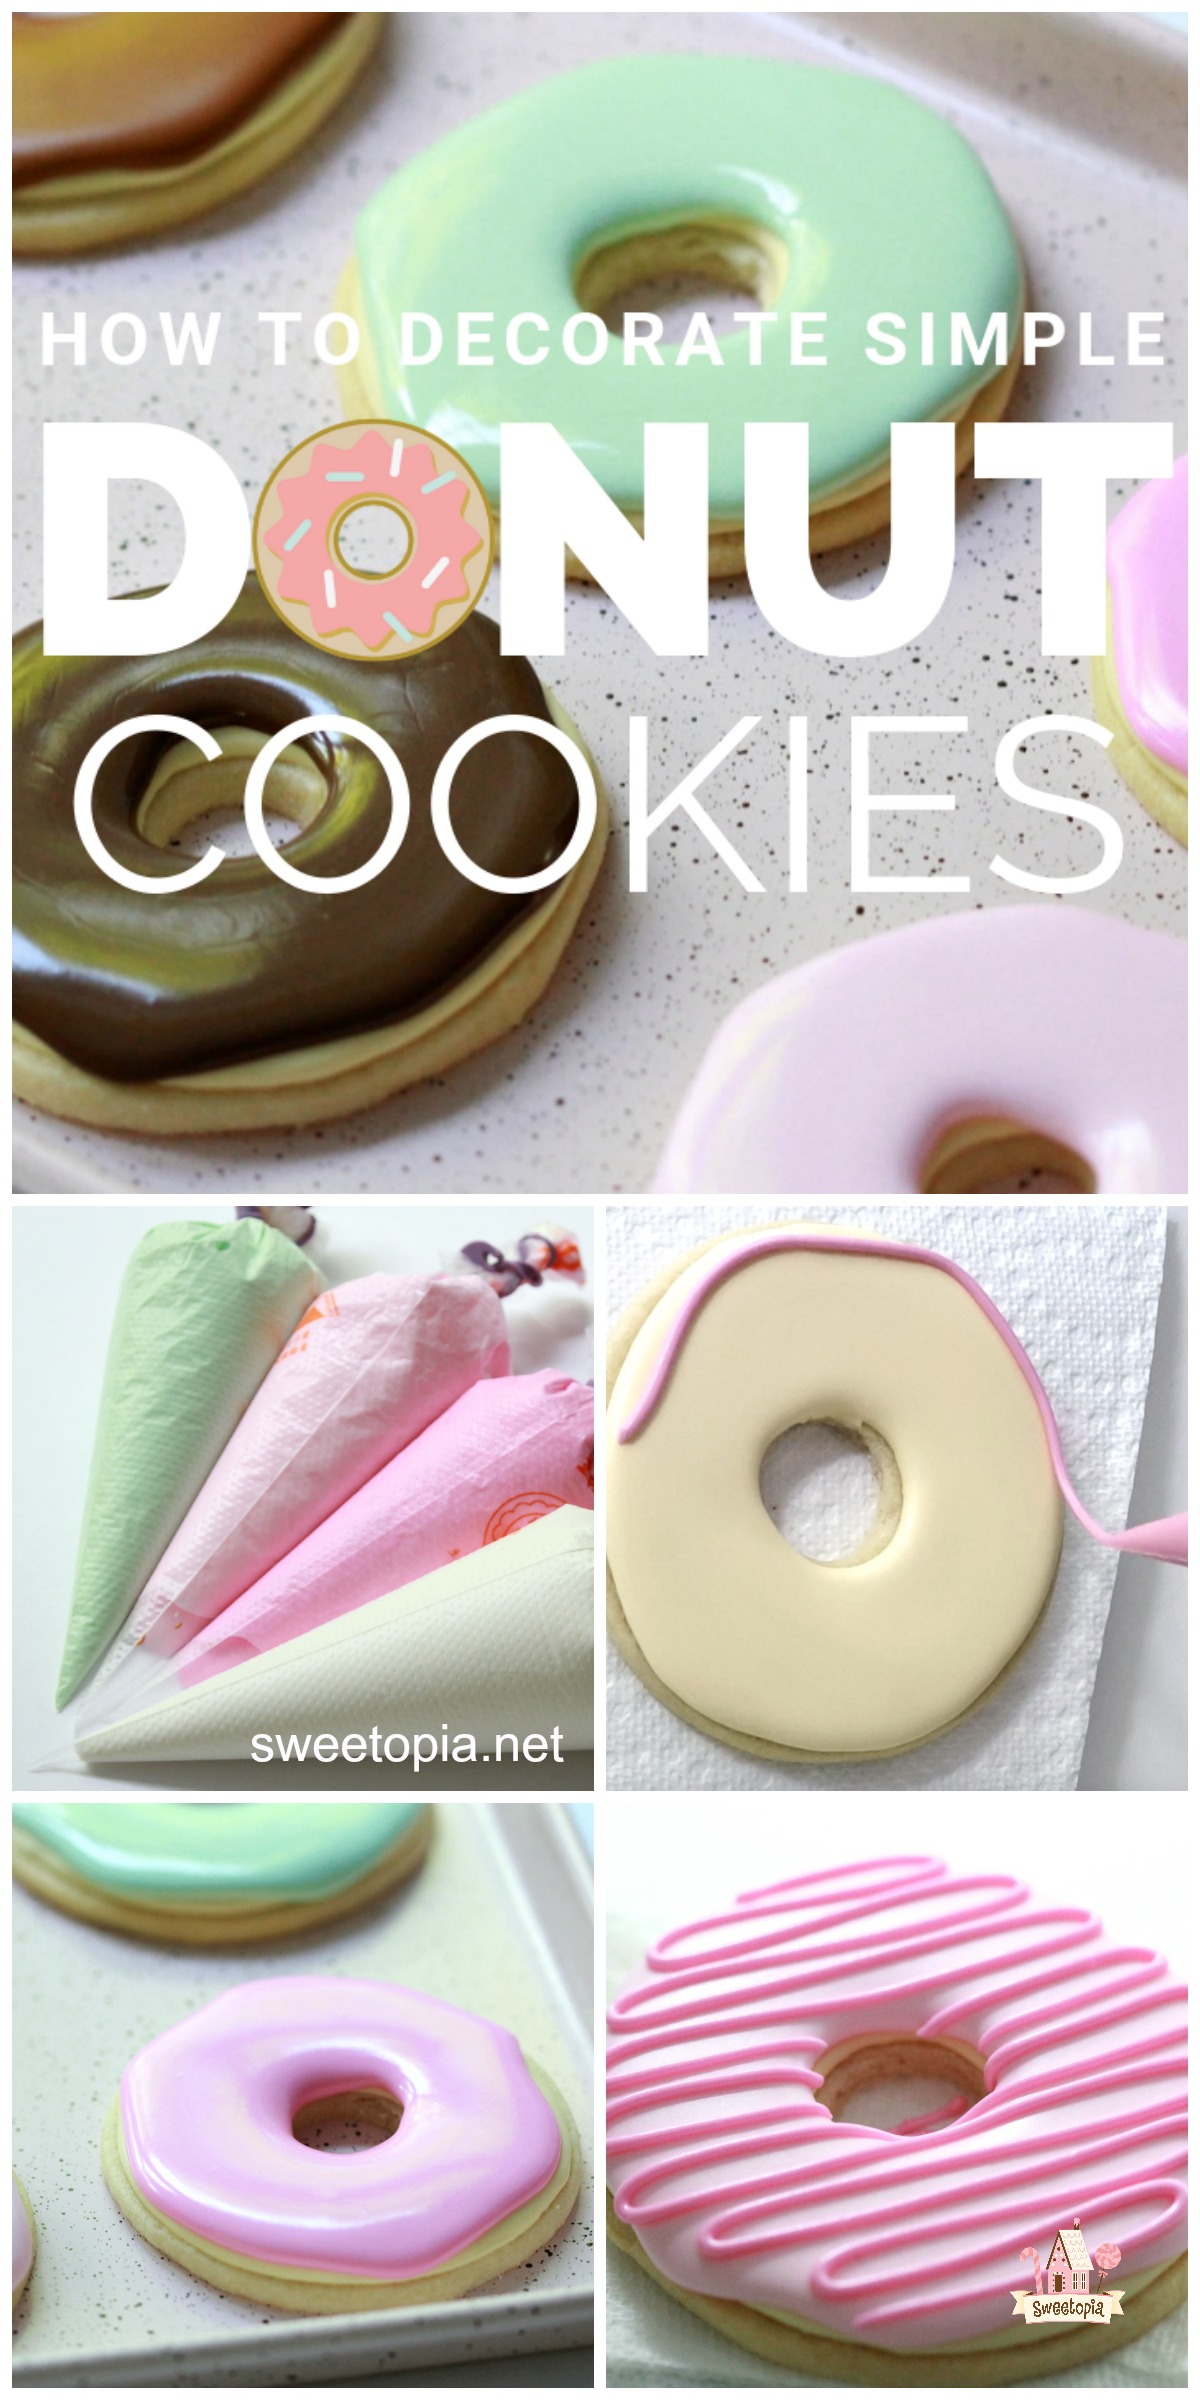 How to Decorate Simple Donut Cookies